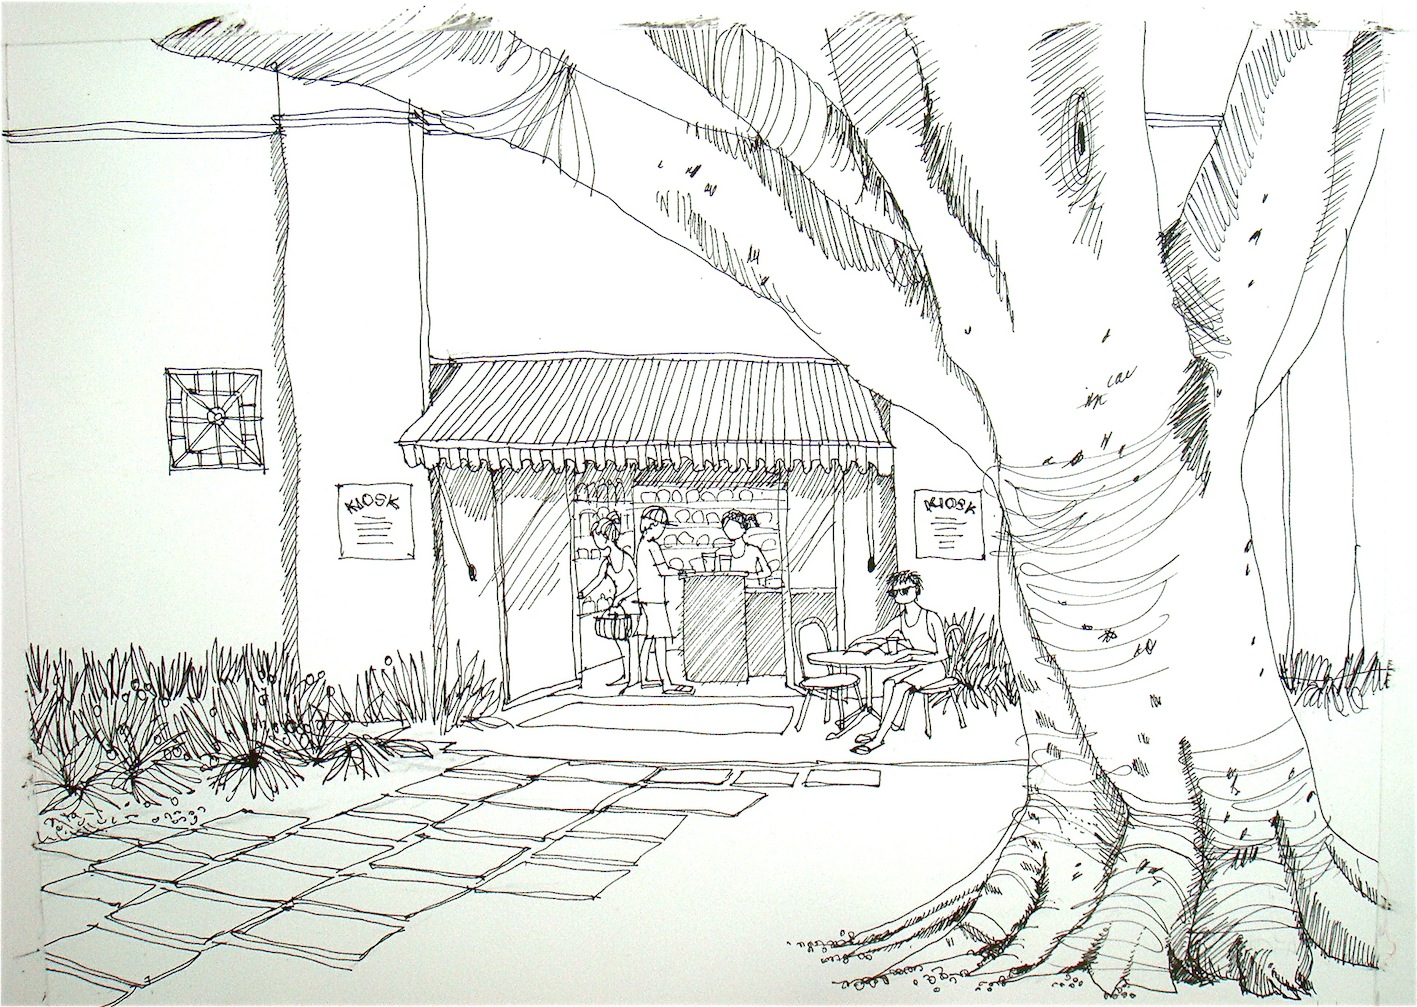 Line Drawing From Photo : Kiosk line watercolour in progress